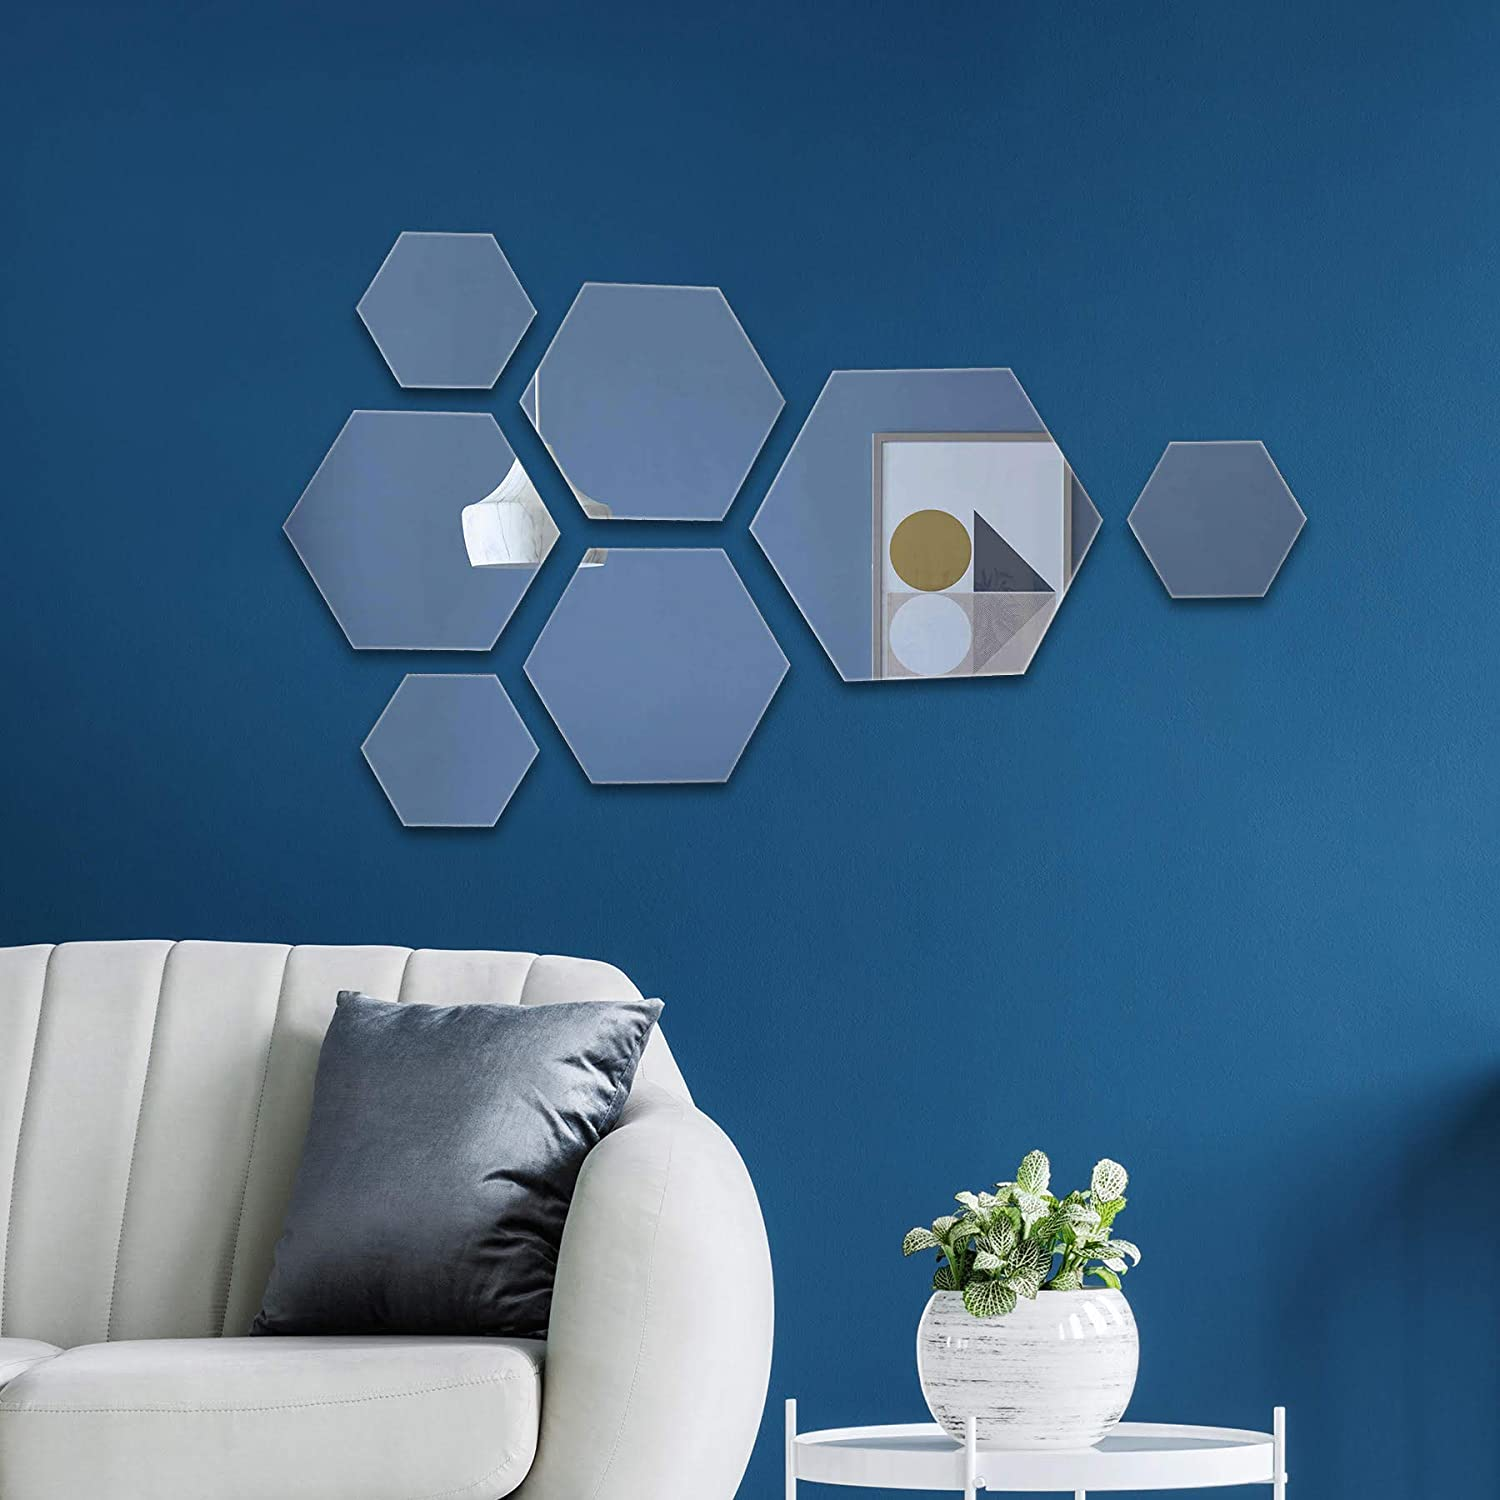 Buy Parnoo Hexagon Mirror Wall Mounted Assorted Sizes 1x10 3x7 3x4 Set Of 7 Hexagonal Glass Mirrors Decoration For Living Room Bedroom Bathroom Or Statement Wall Online At Low Prices In India